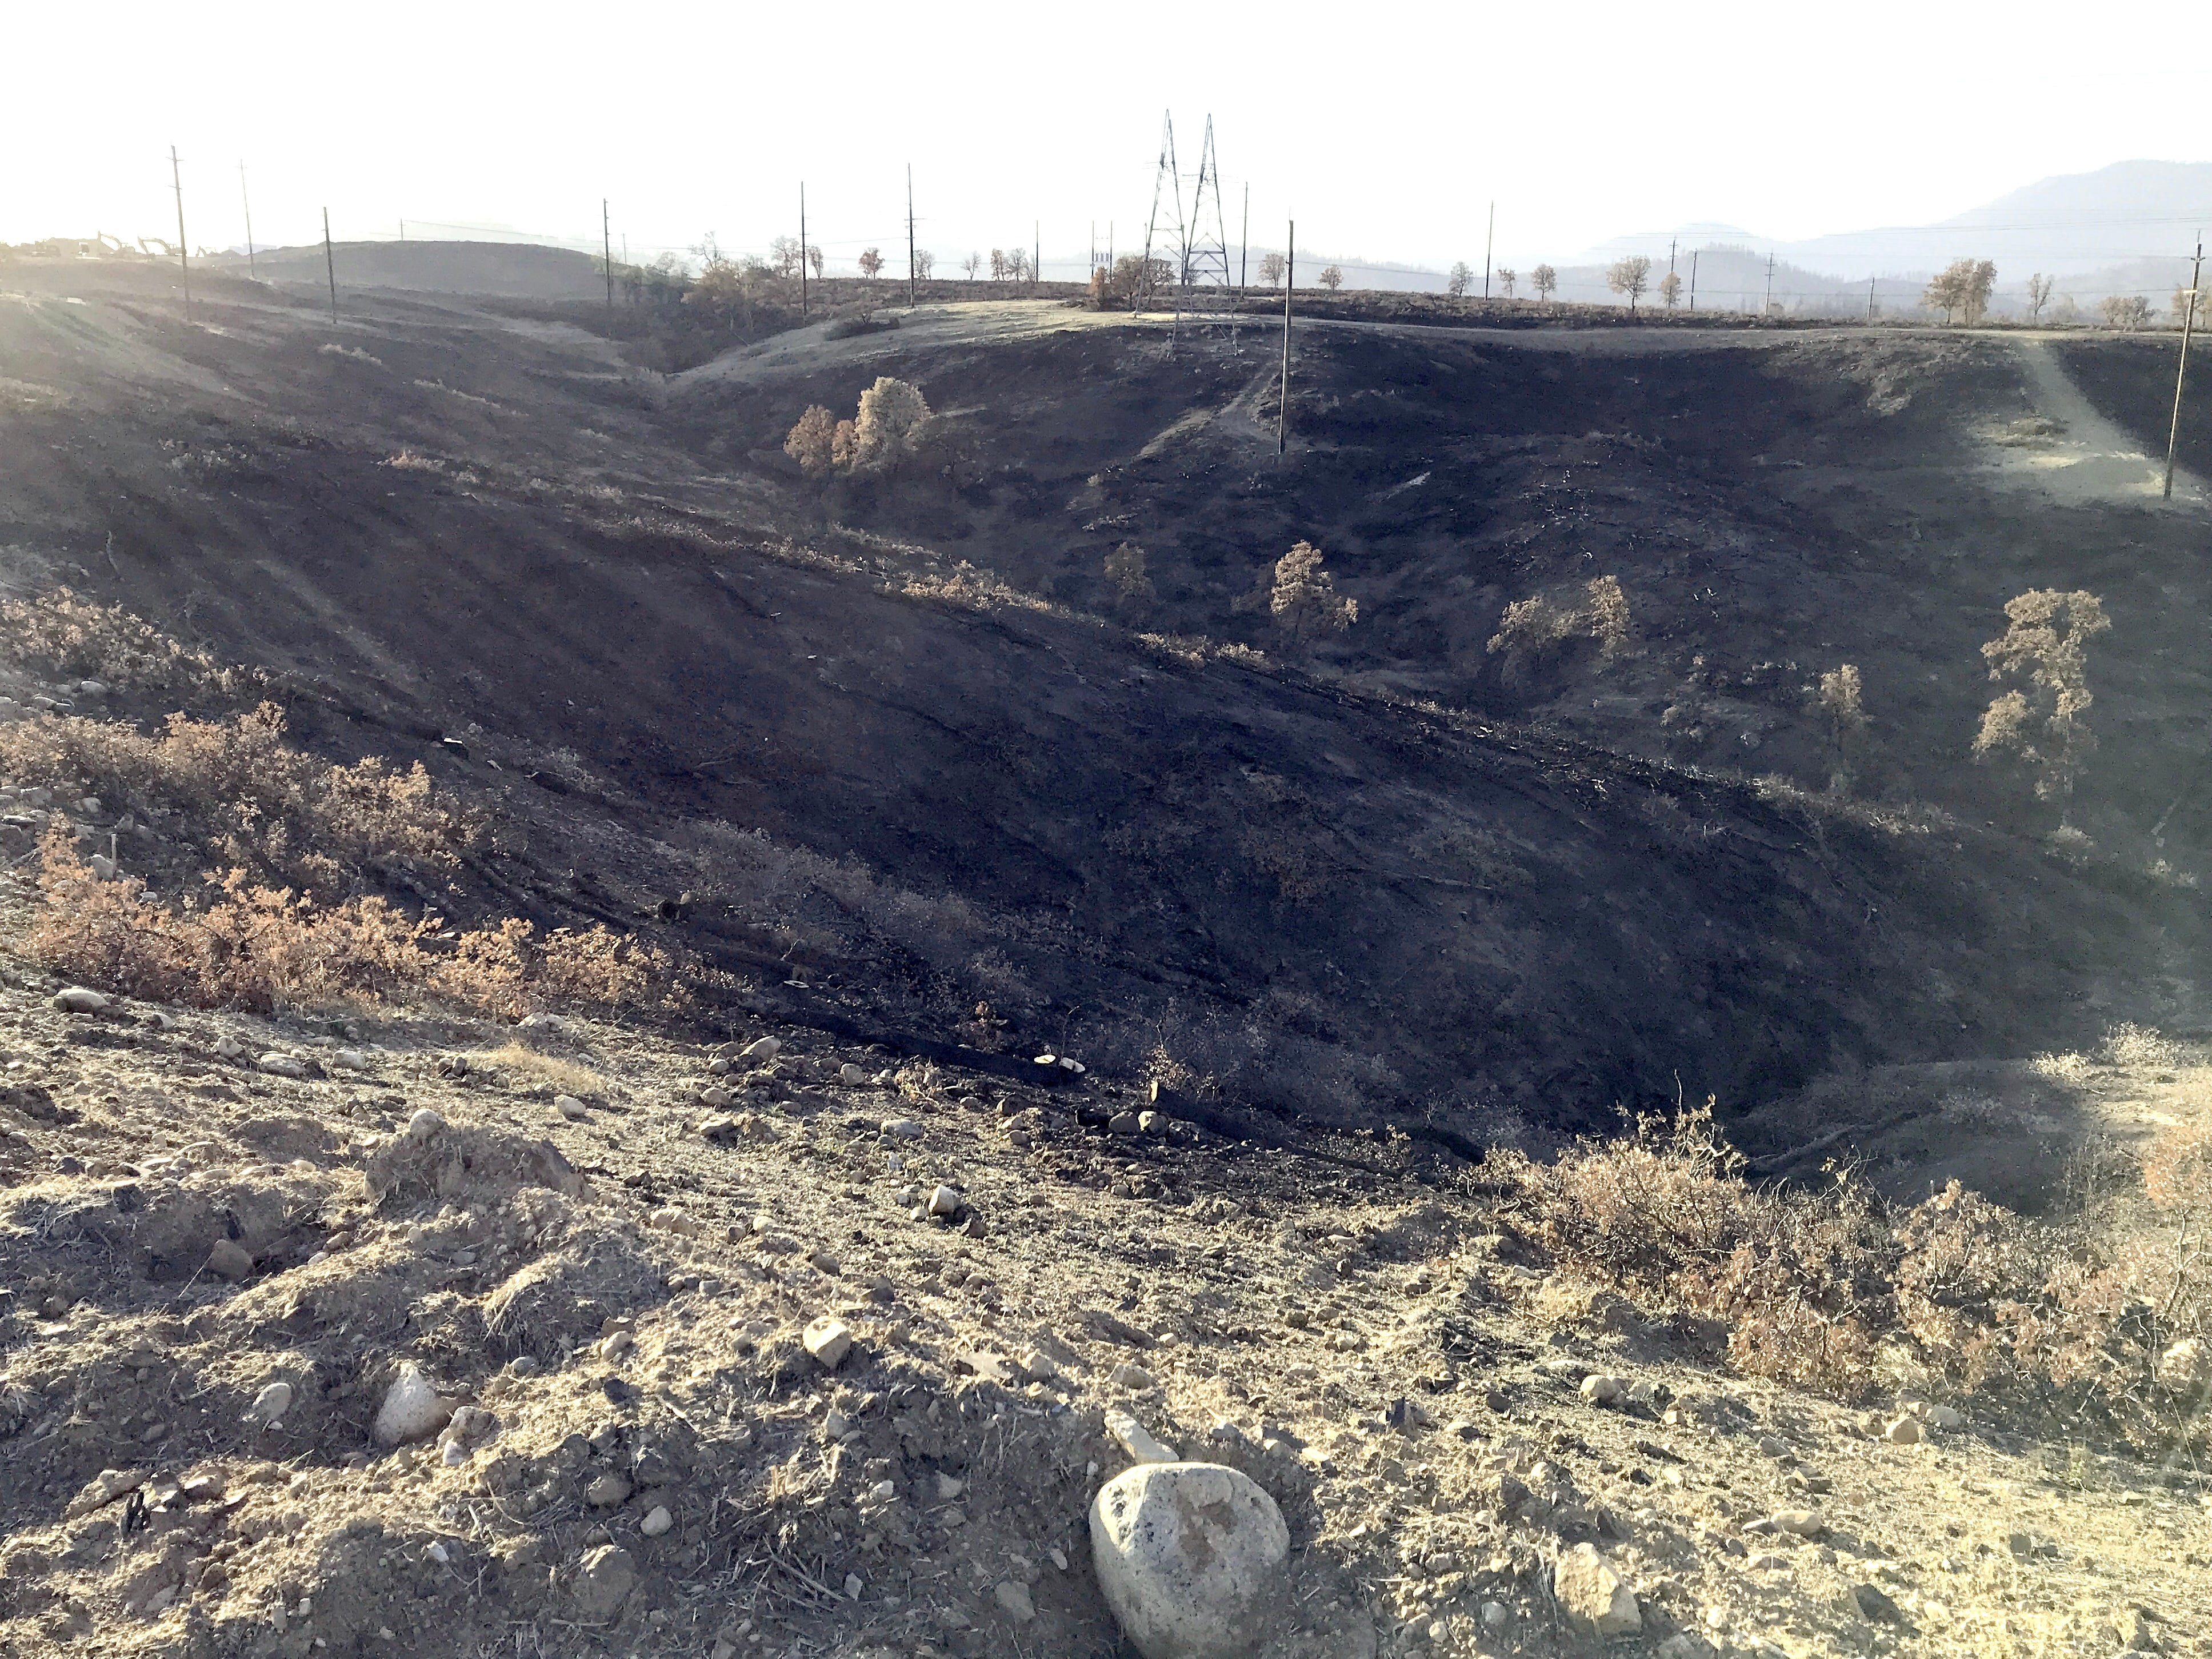 """The Carr Fire burned dense brush in this ravine west of the Salt Creek Heights subdivision under construction in Redding. Before the fire, the developer had removed vegetation near where homes are being built to create a defensible space. Redding Fire Marshal Craig Wittner called the previously-standing manzanita and scrub brush a """"Wall of Death"""" due to the fire hazard it had posed."""